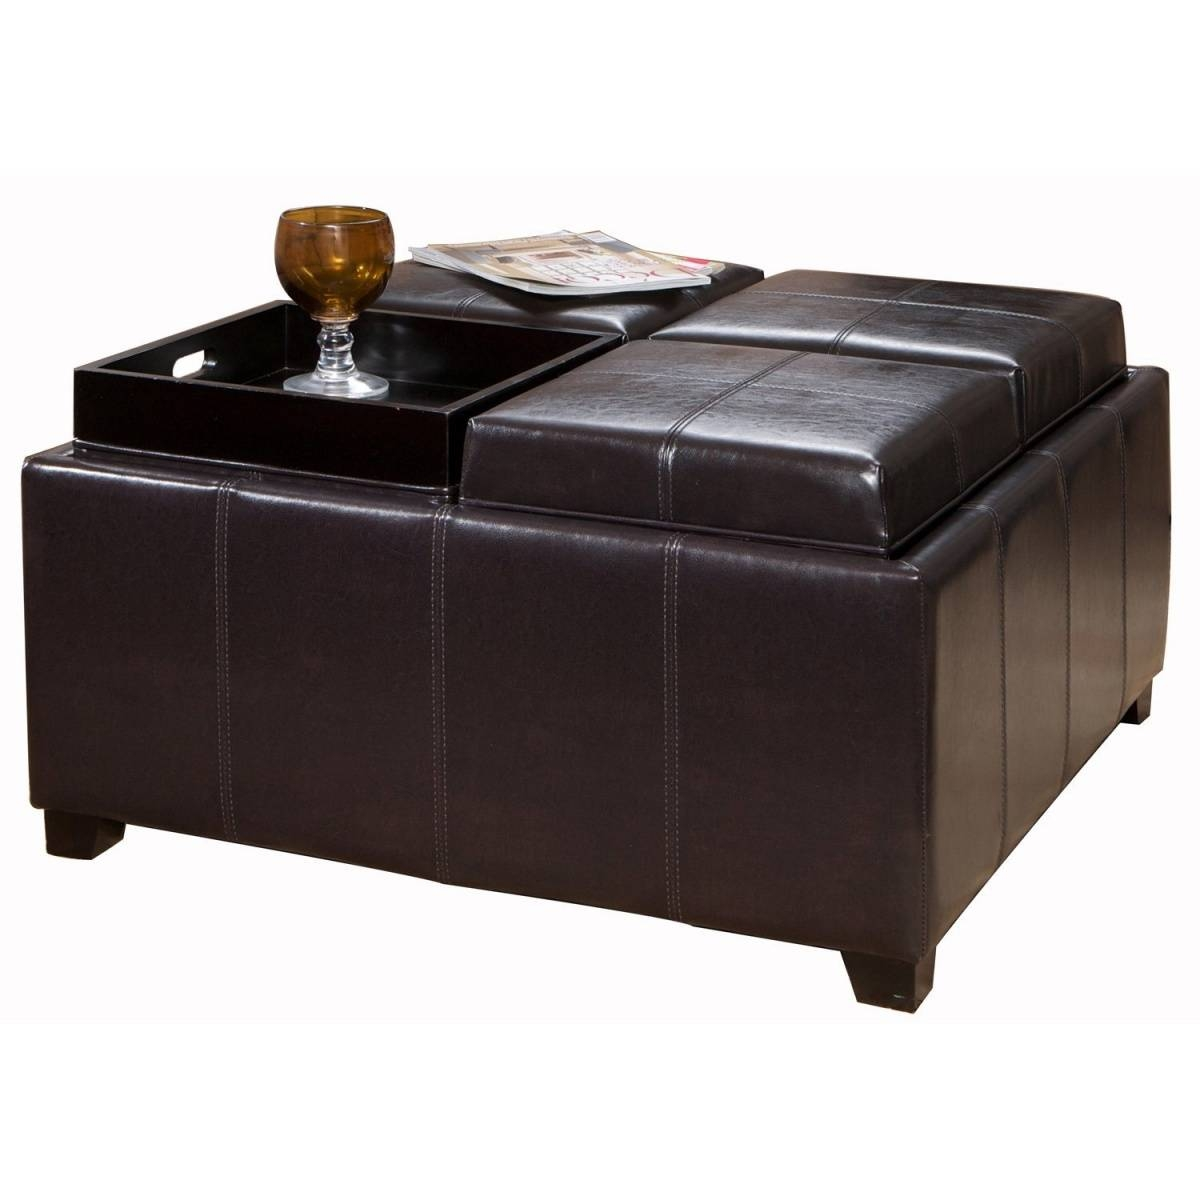 Coffee Table: Enchanting Leather Coffee Table Ottoman Designs intended for Dark Brown Coffee Tables (Image 10 of 30)